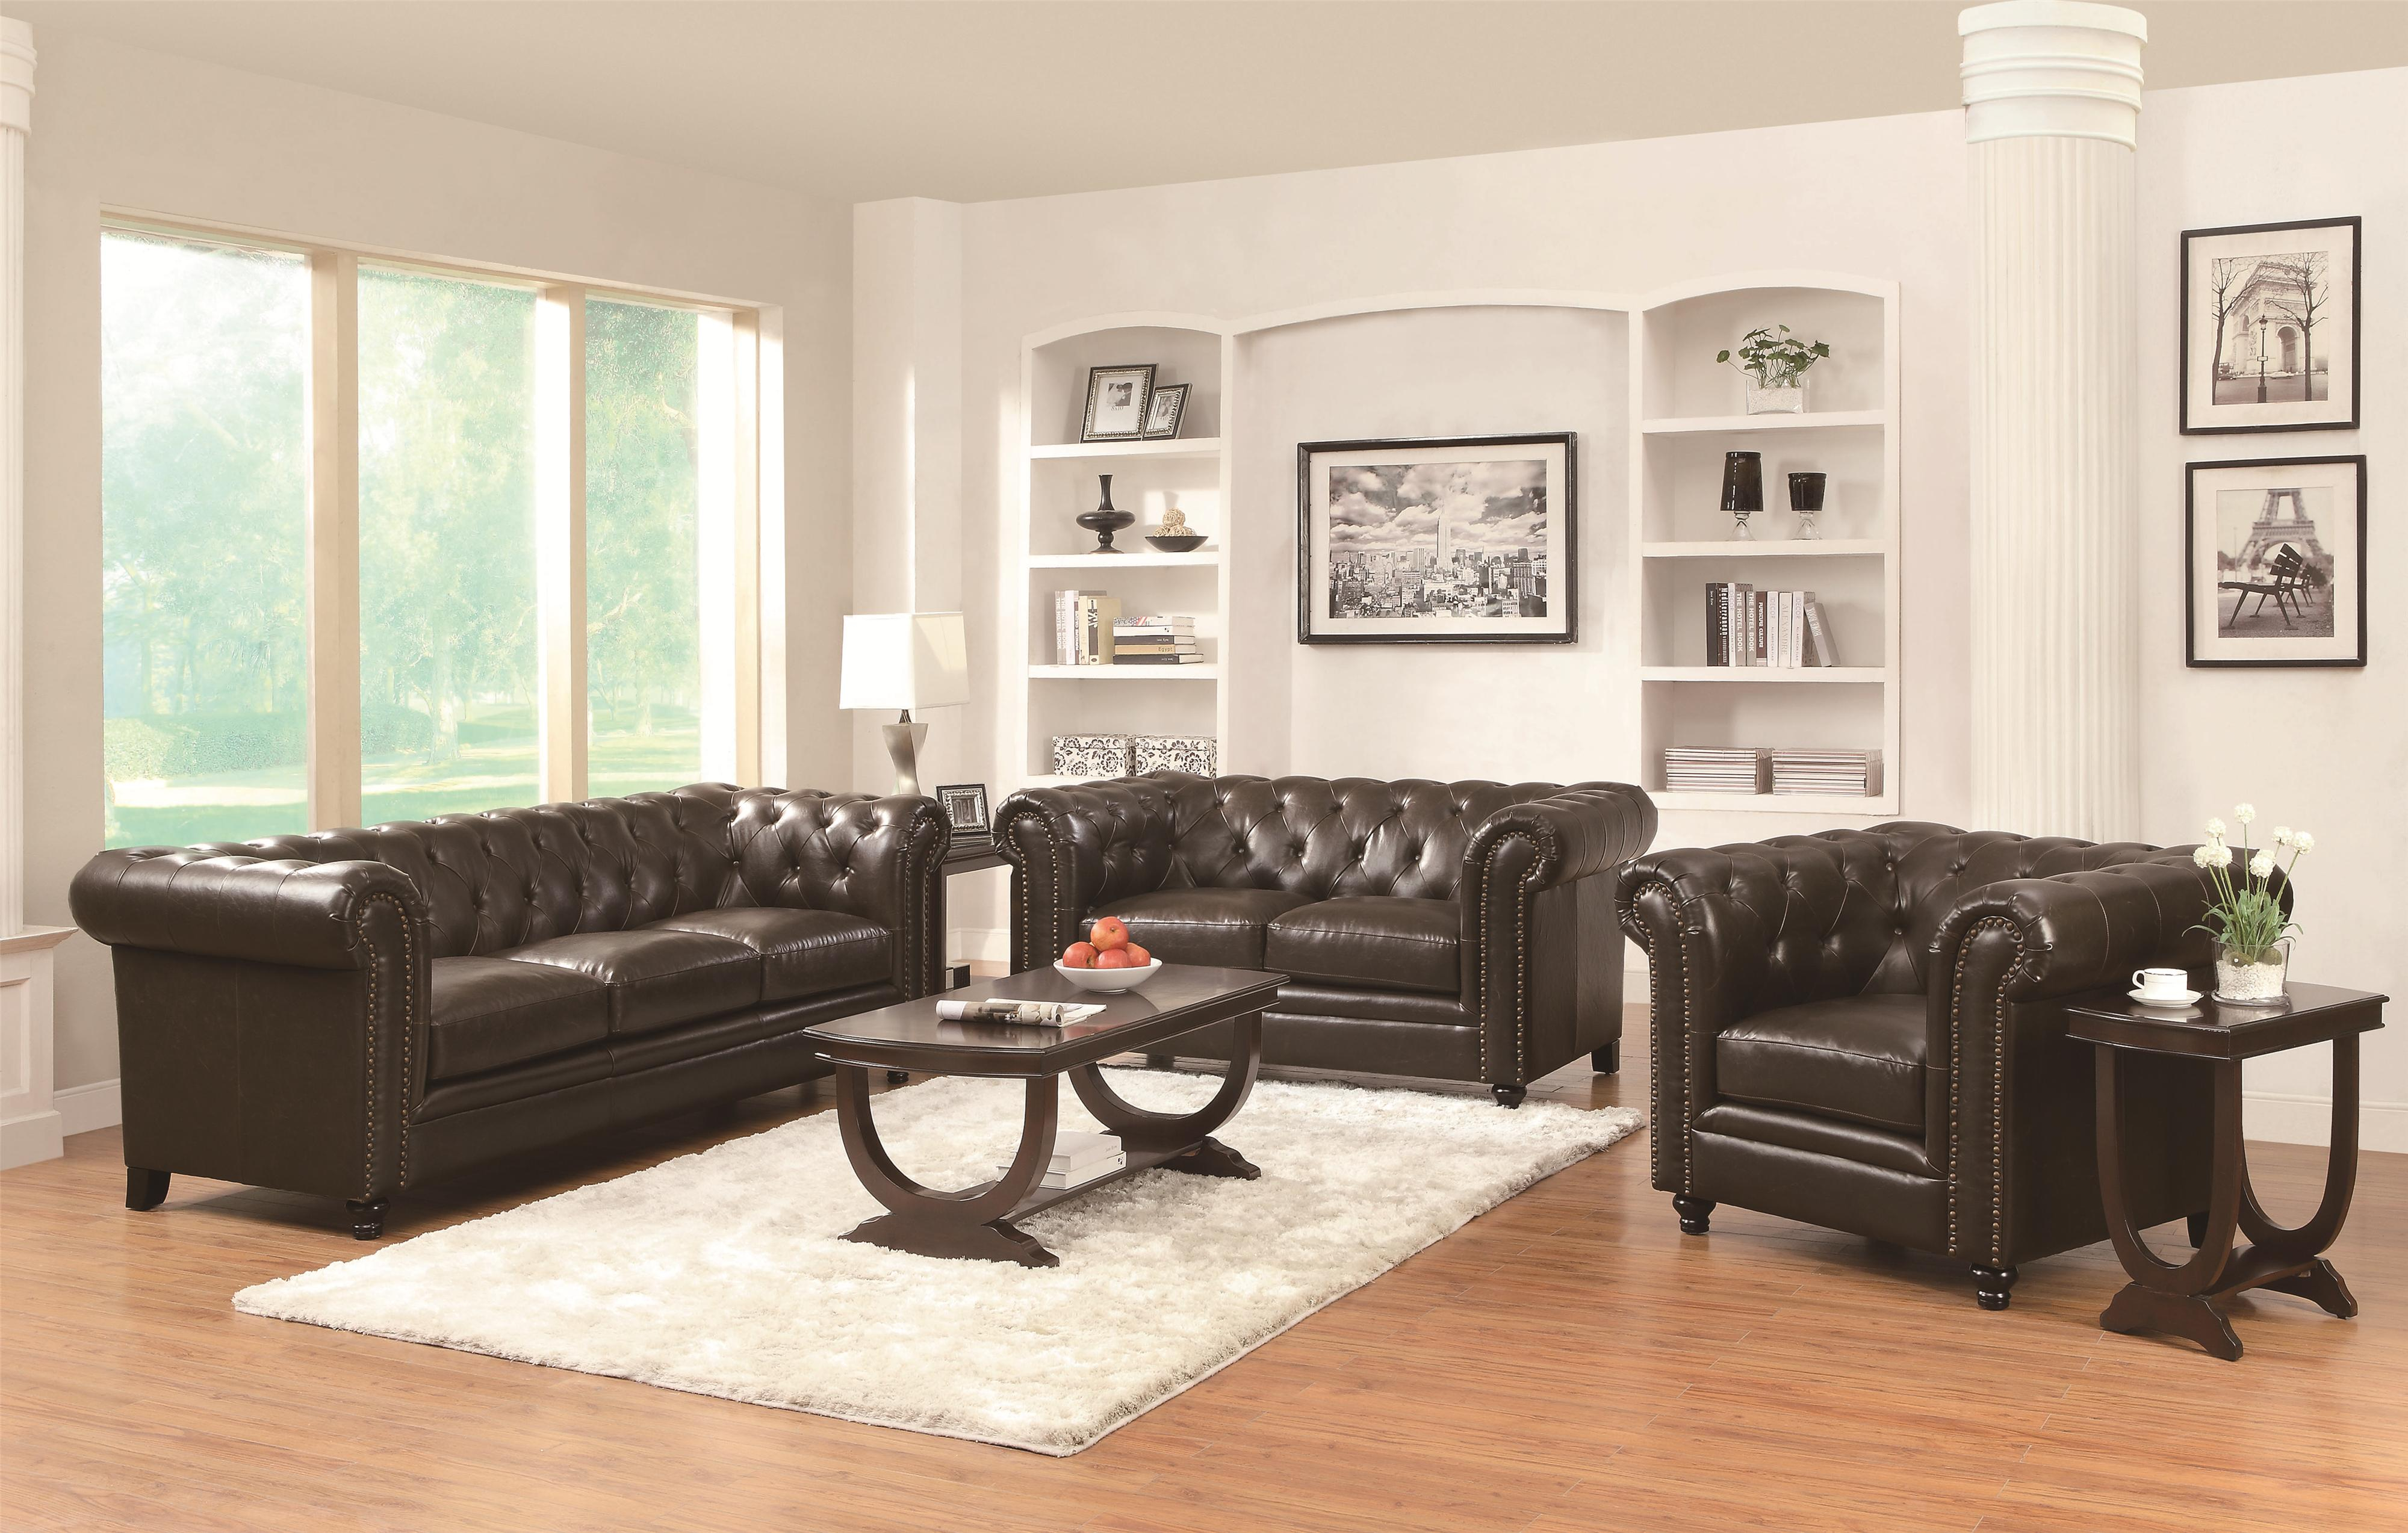 Leather Sofas Traditional Living Room Set Co 504551 for 10 Awesome Ways How to Craft Traditional Leather Living Room Sets